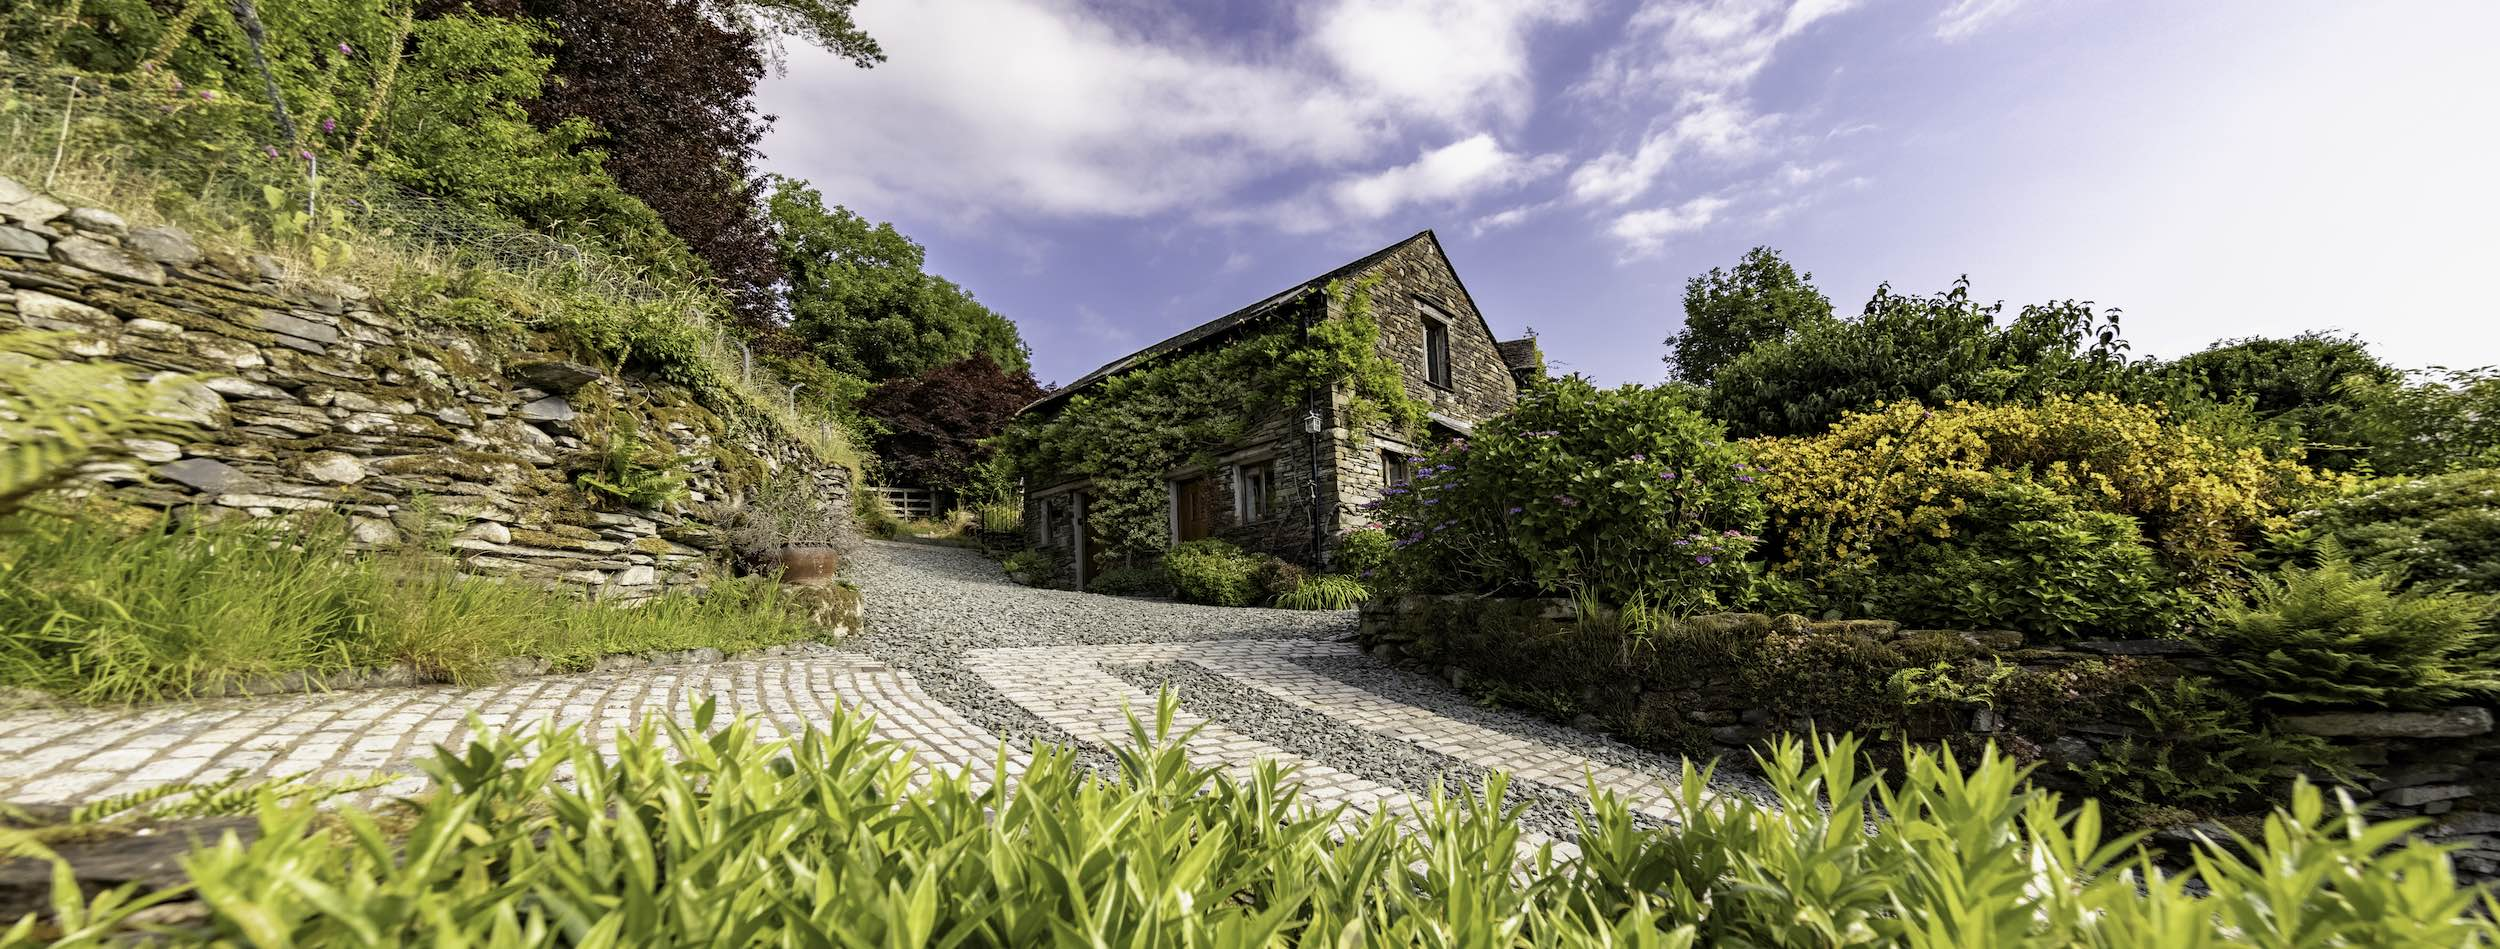 Townfoot Barn, Troutbeck